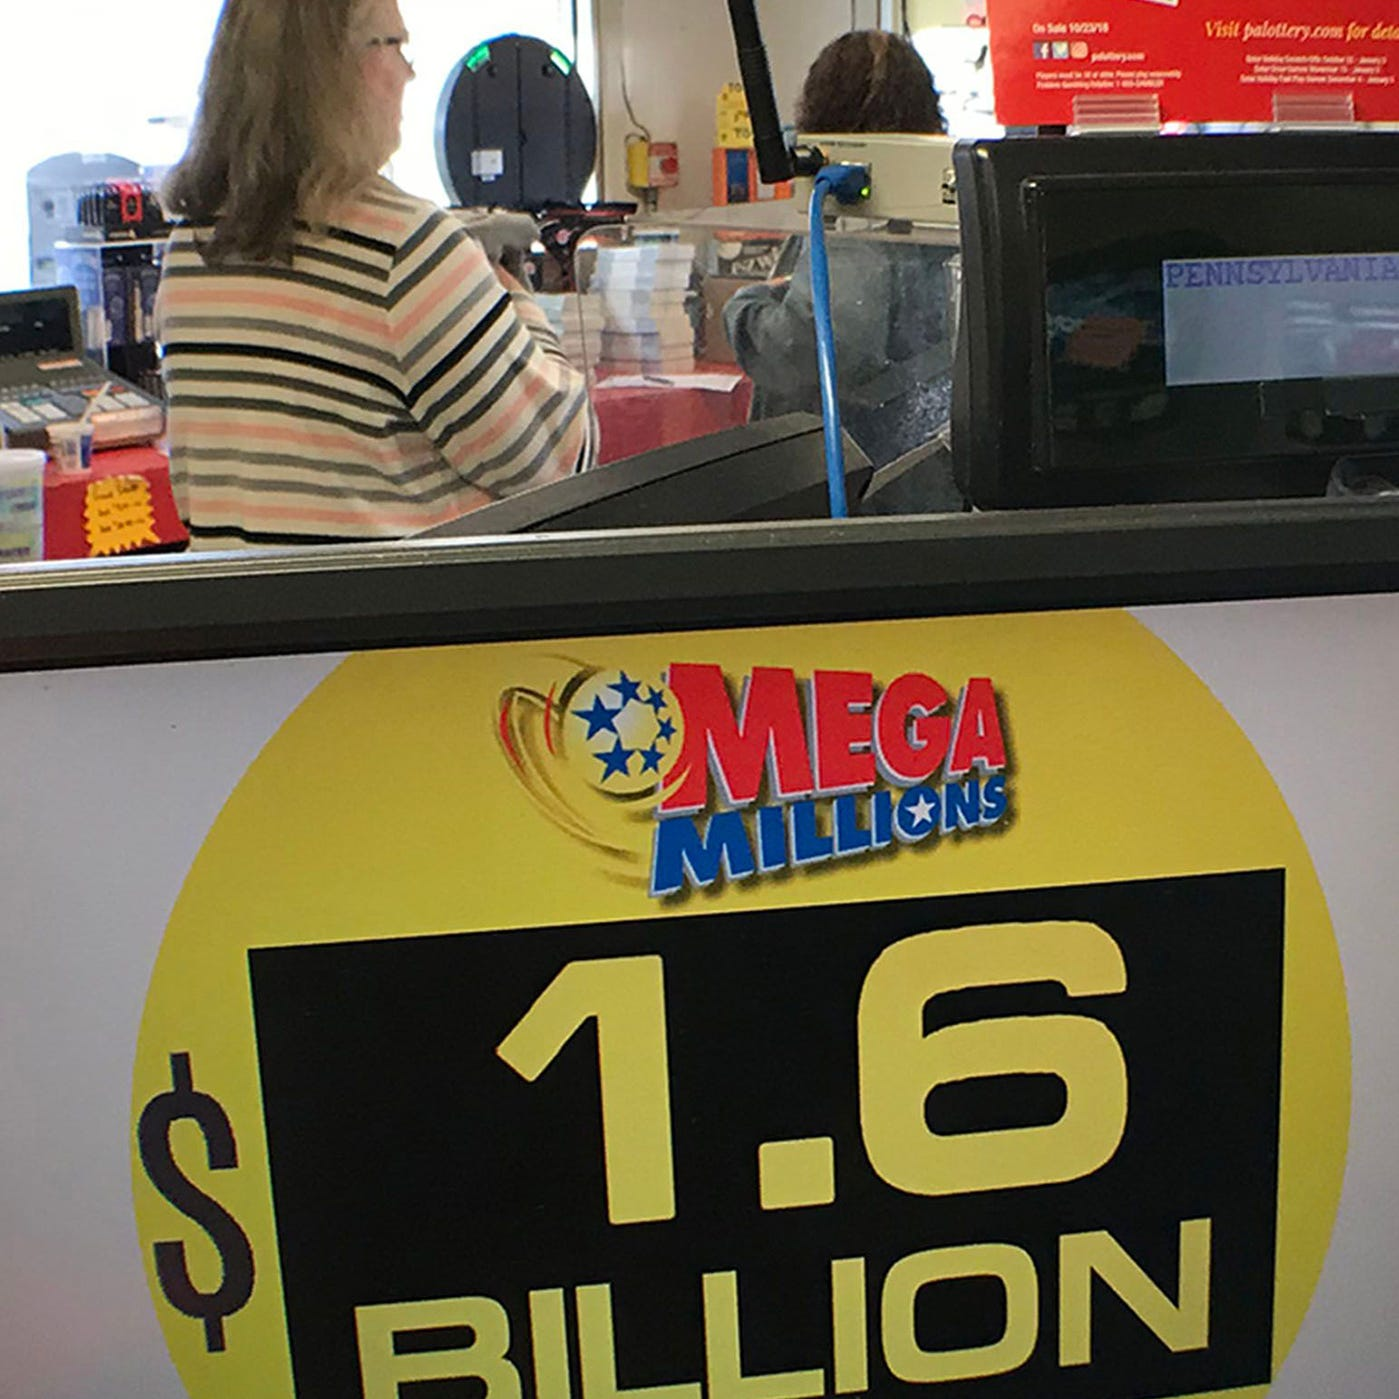 Billionaire's accountant: Hey, Mega Millions winner — life's not all Ferraris and mansions